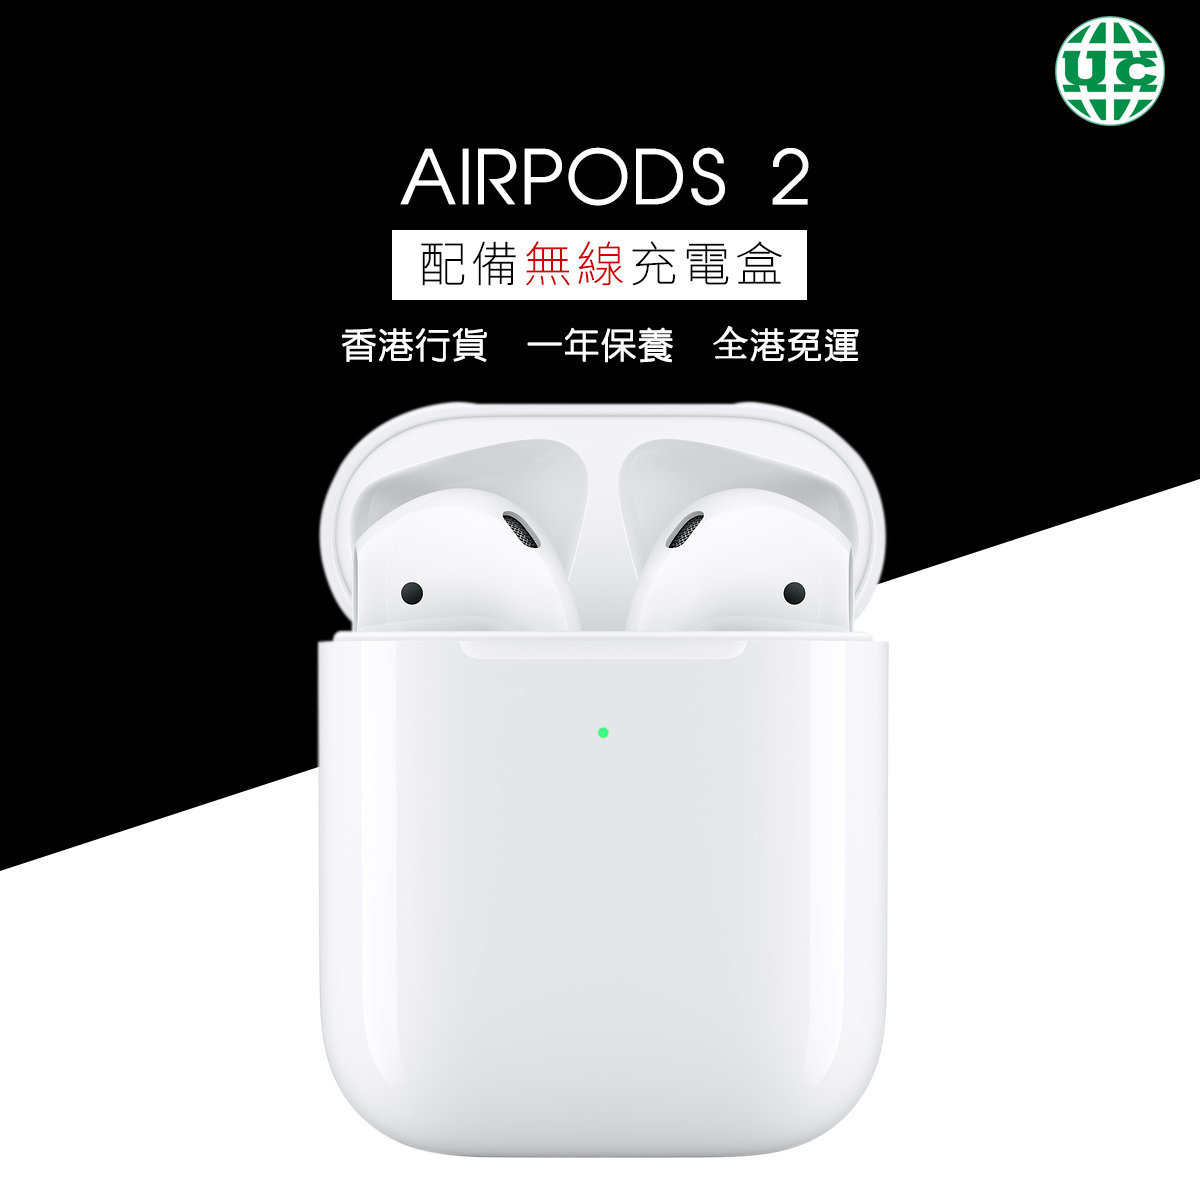 AirPods 2 equipped with wireless charging box (Hong Kong licensed)